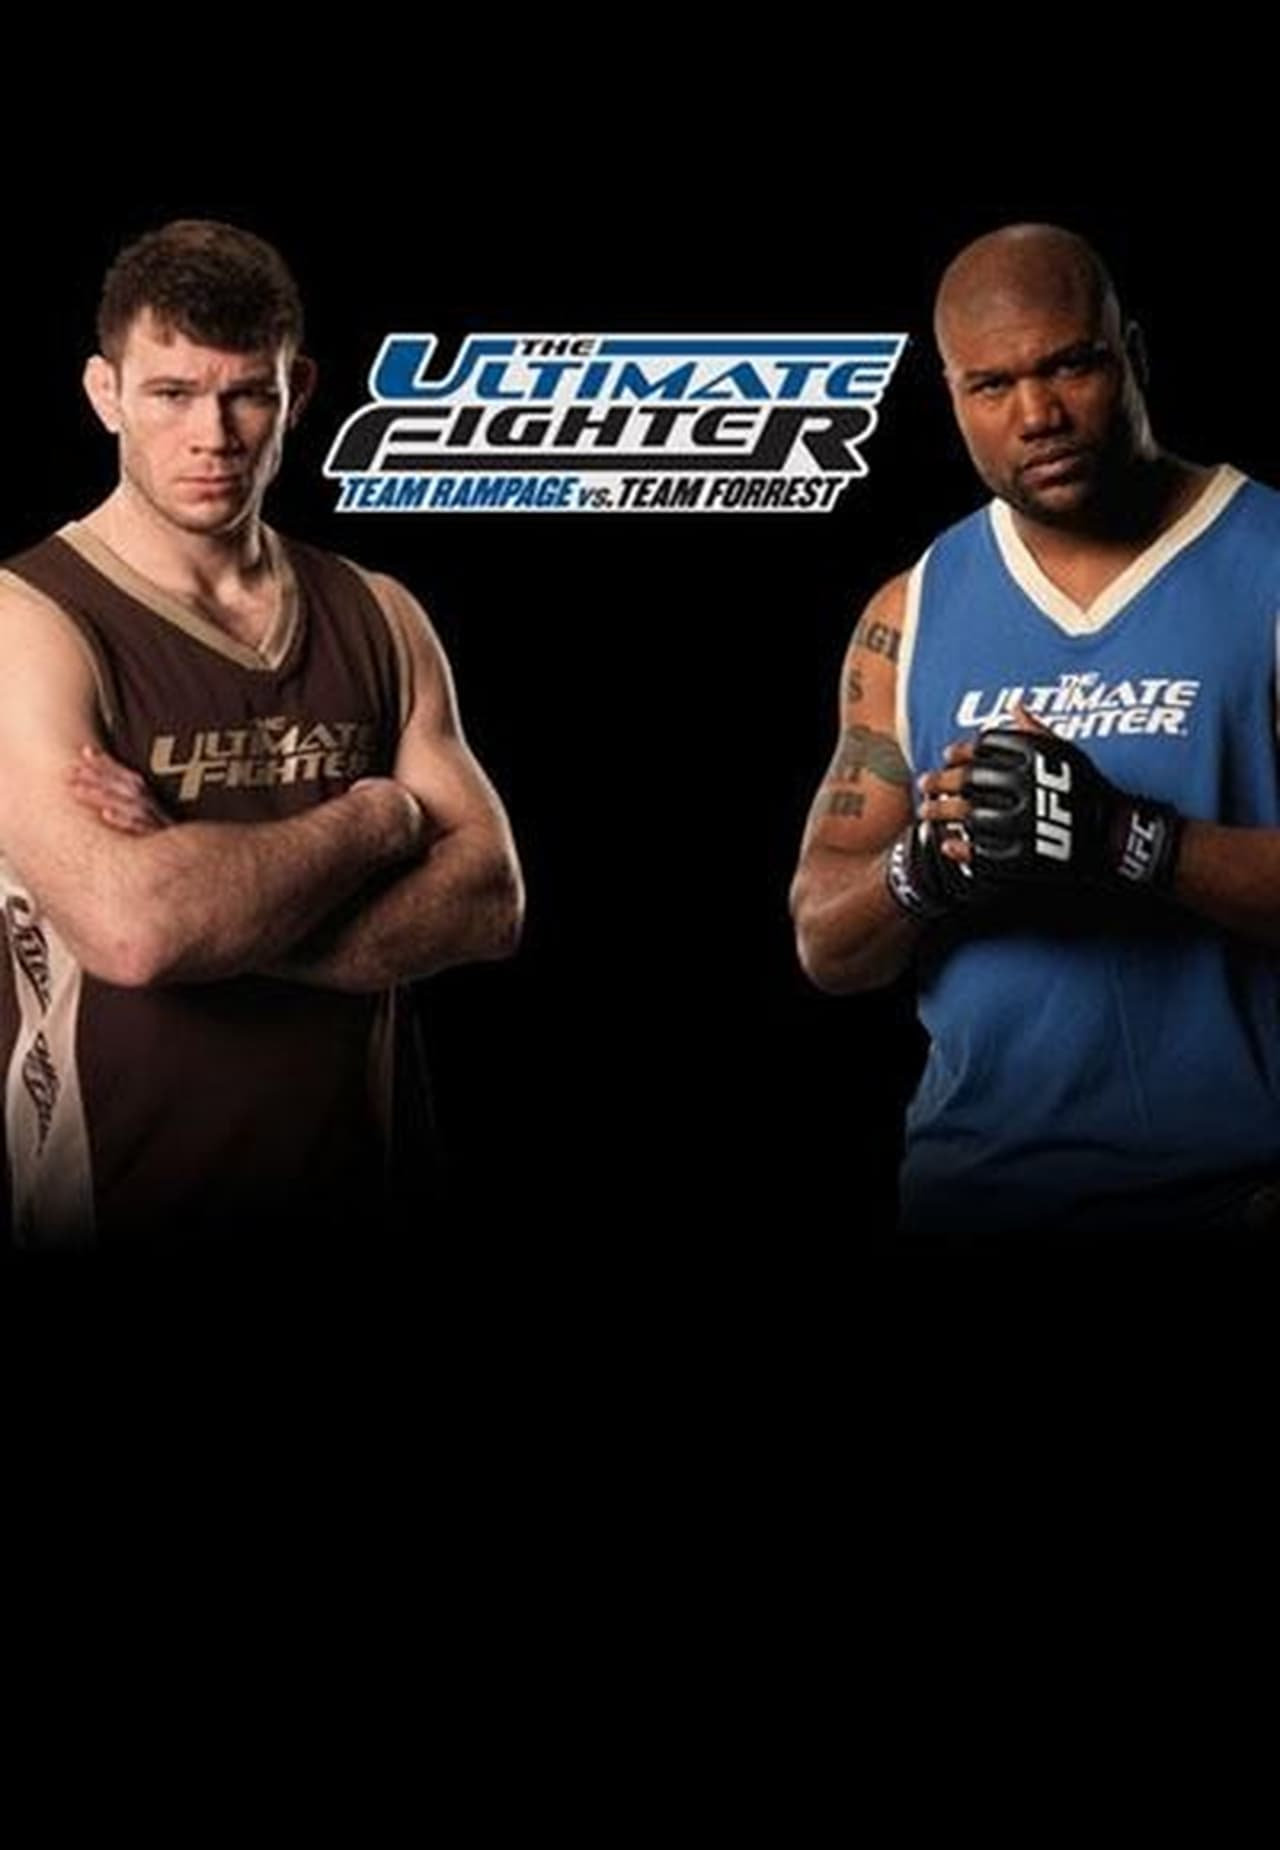 Watch The Ultimate Fighter Season 7 Online